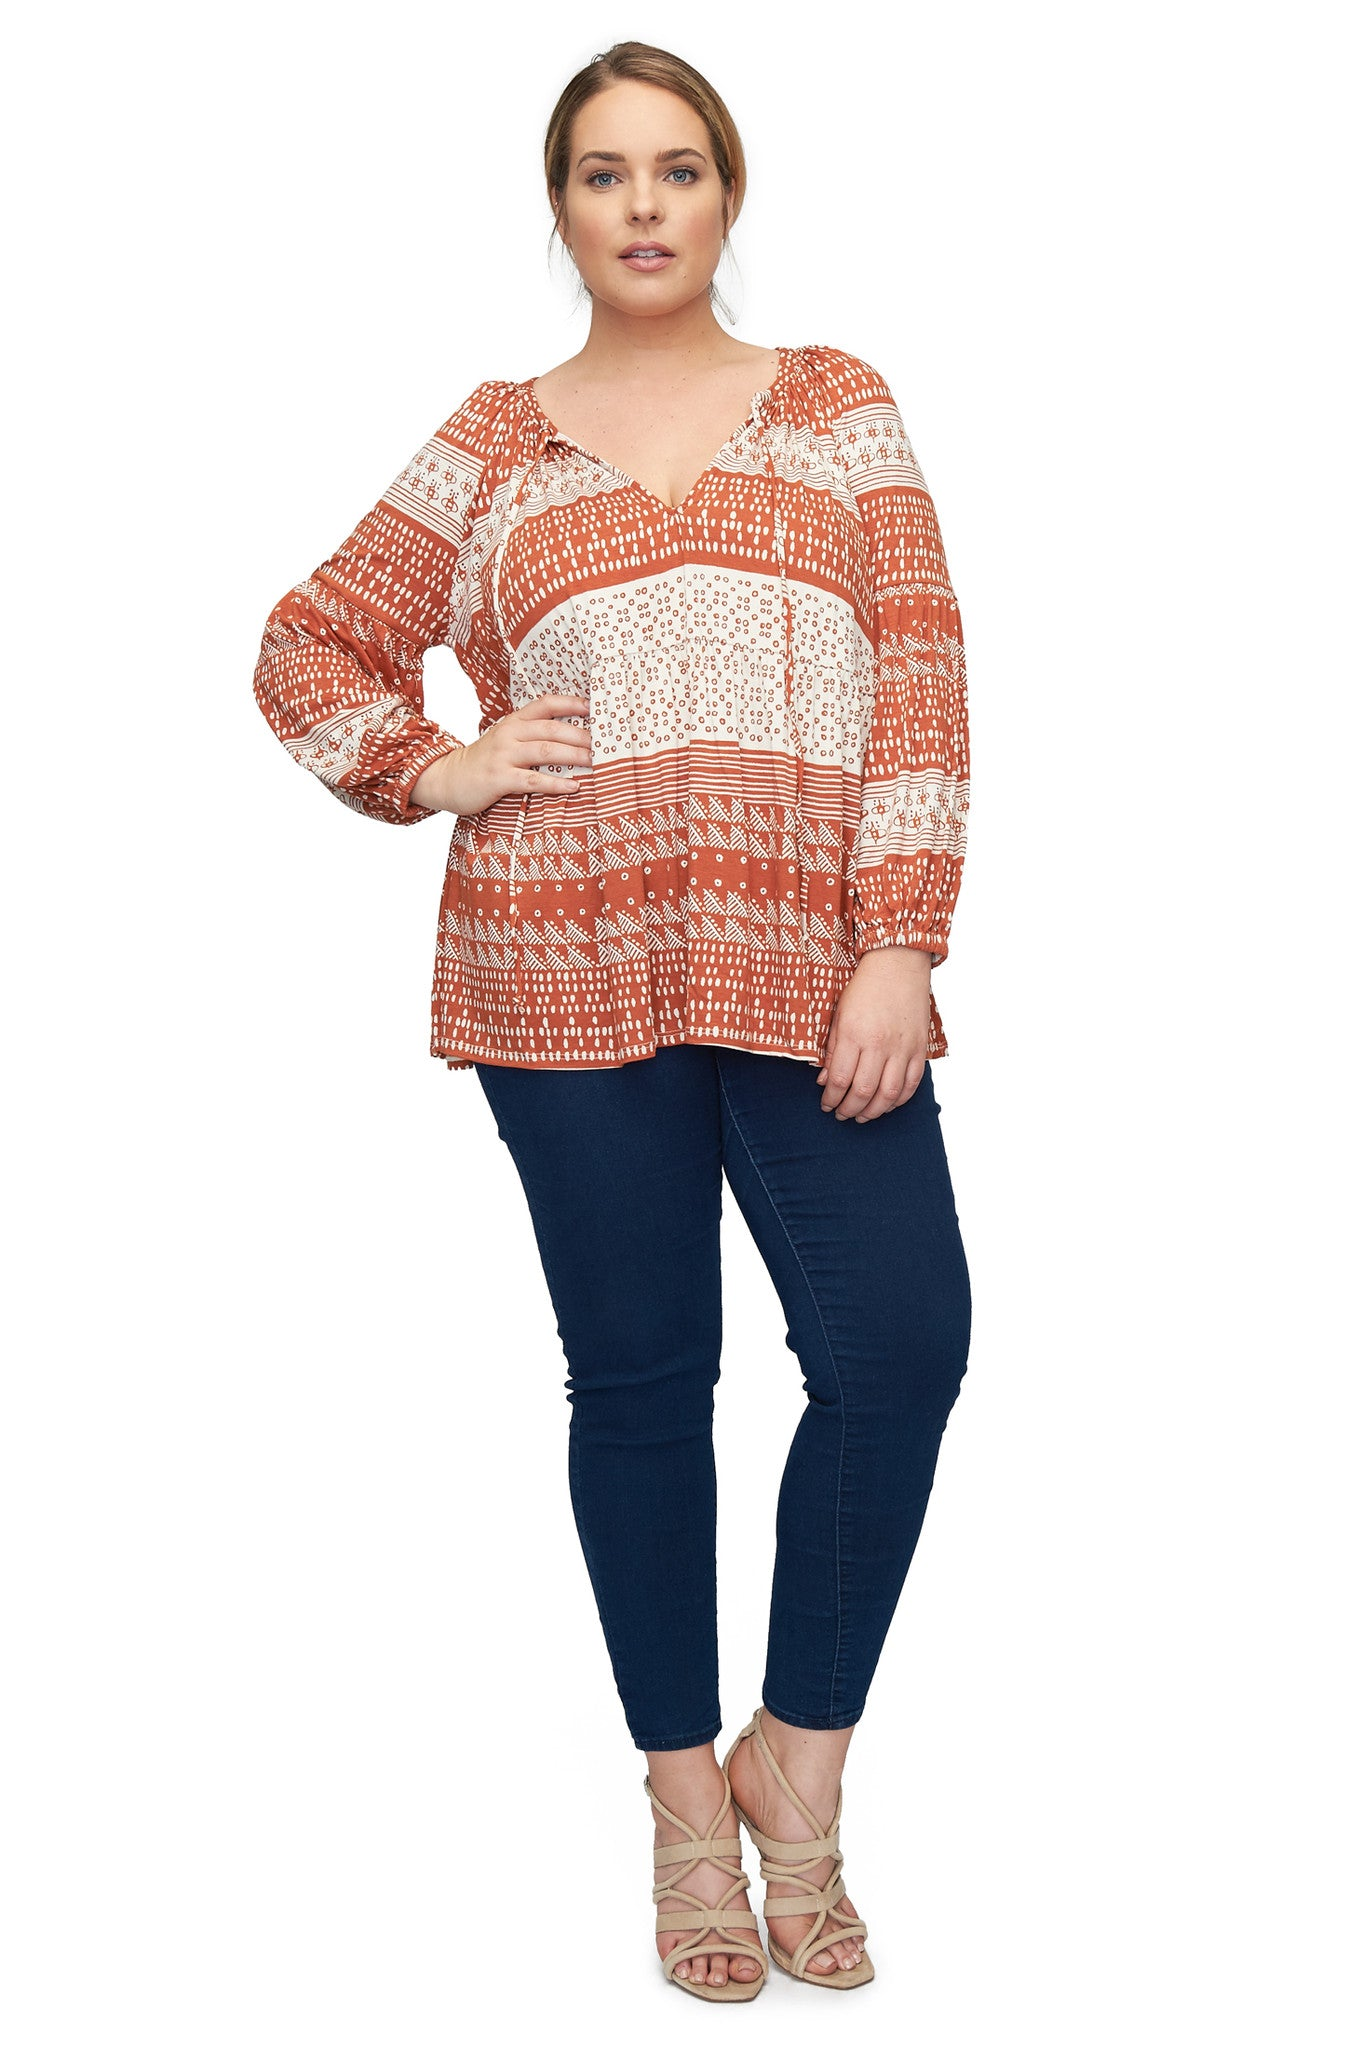 Rupert Top WL Print - Copper Block Print